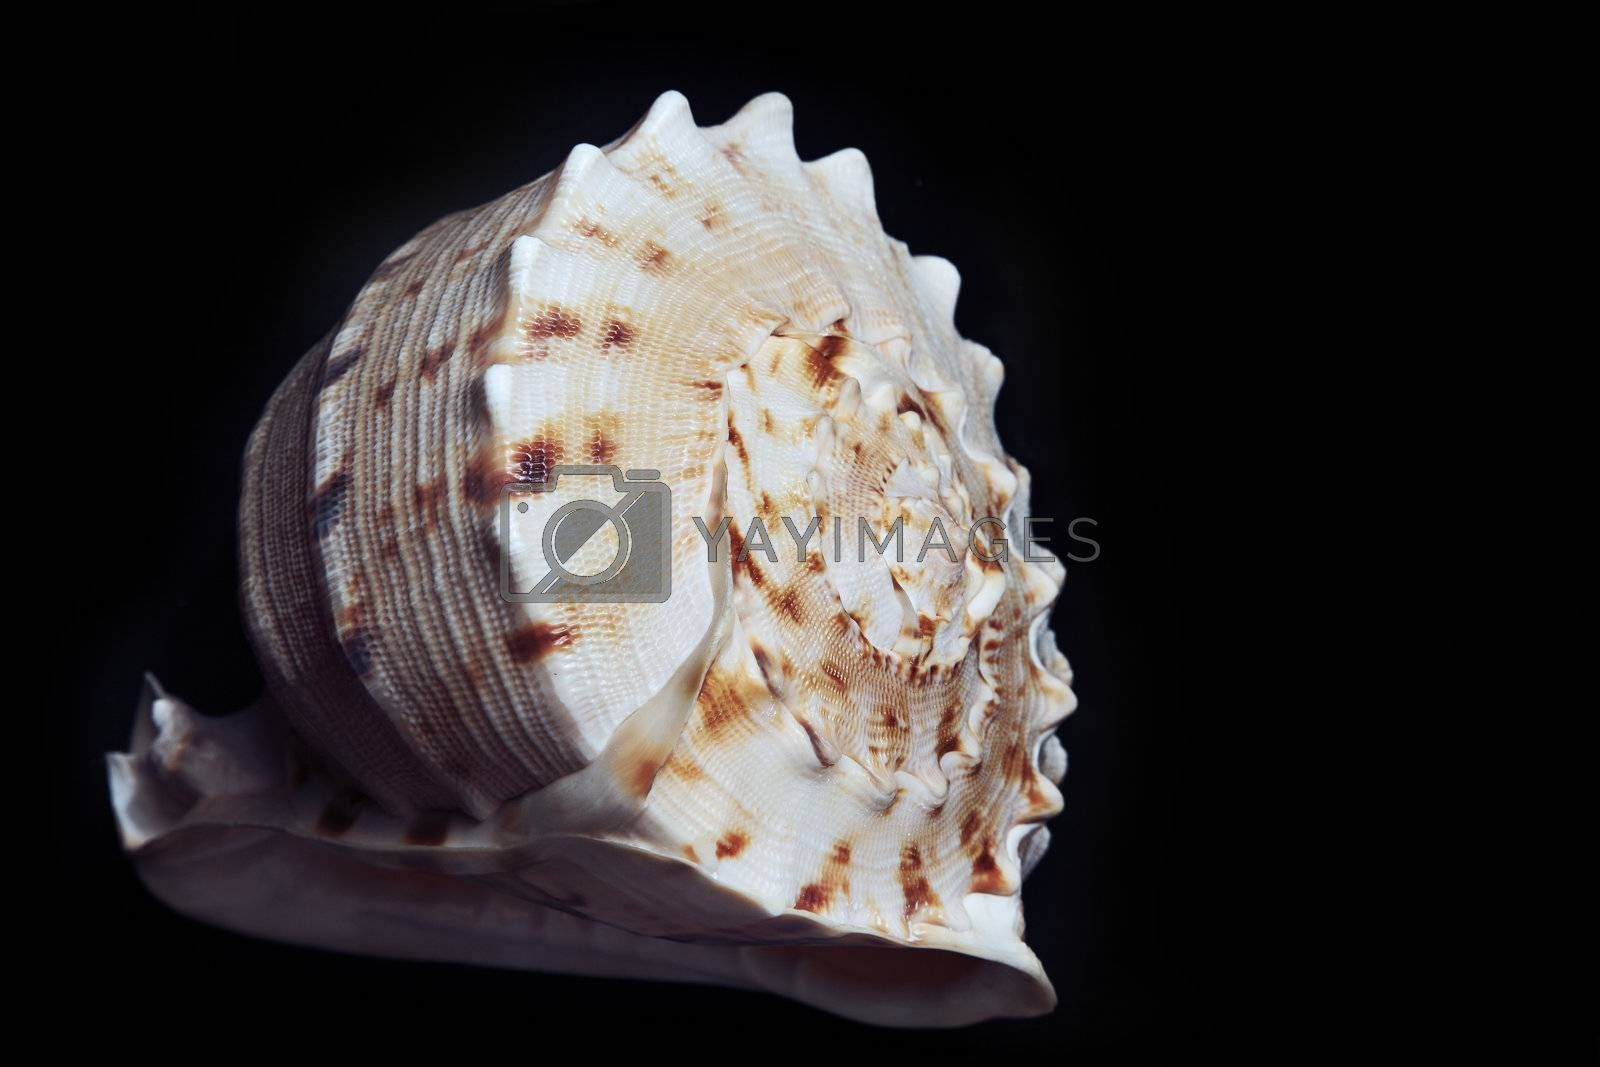 Close-up photo of the seashell on a dark background